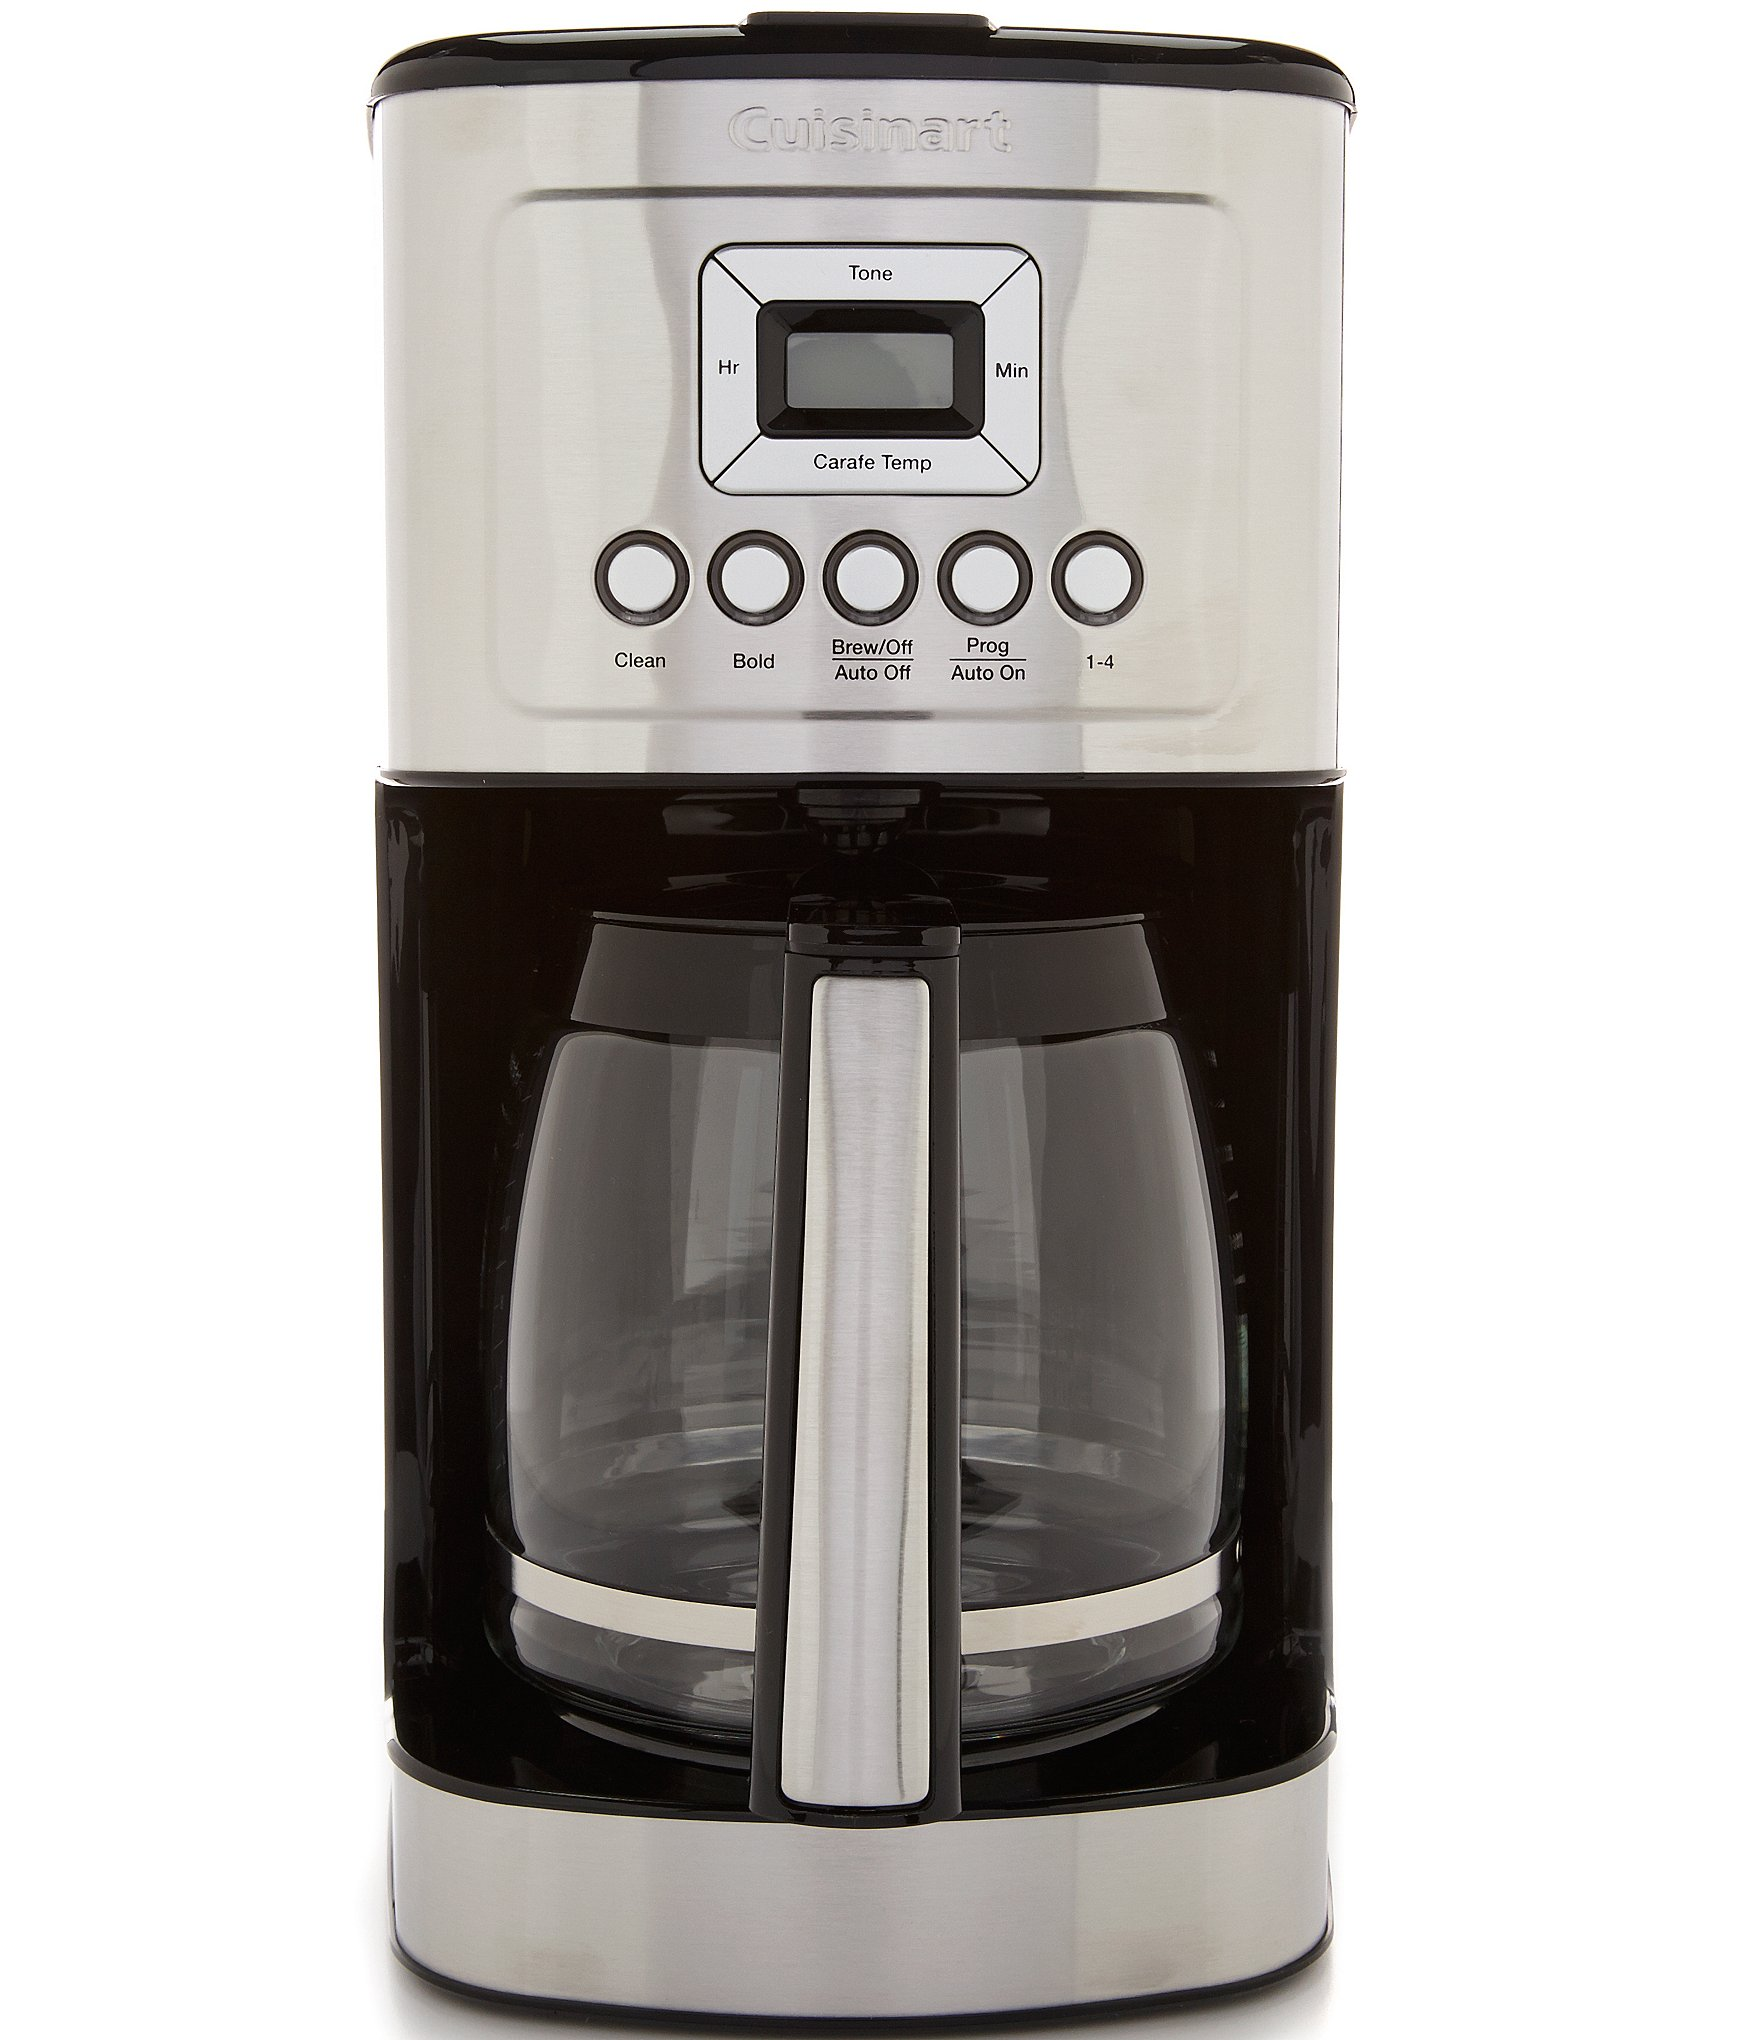 Cuisinart PerfectTemp 14-Cup Programmable Coffee Maker Dillards